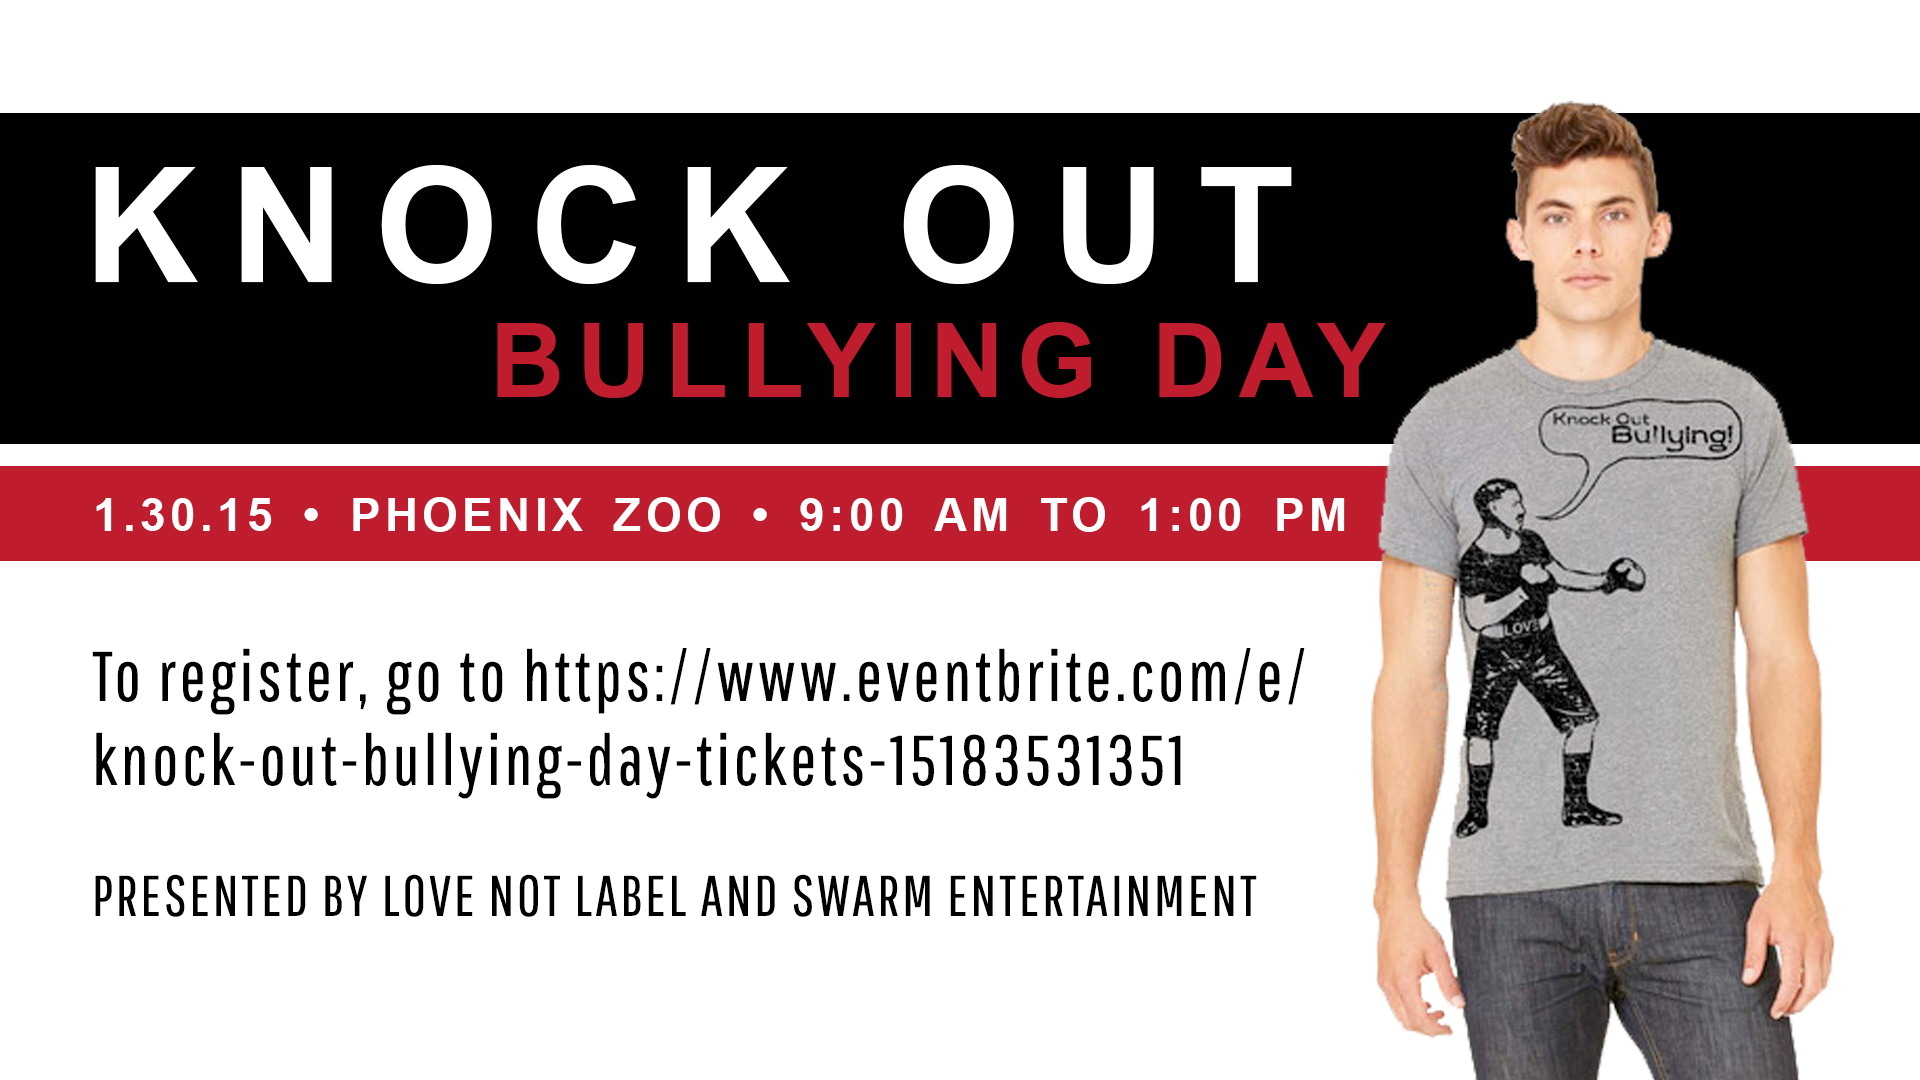 Knock Out Bullying Day at the Phoenix Zoo